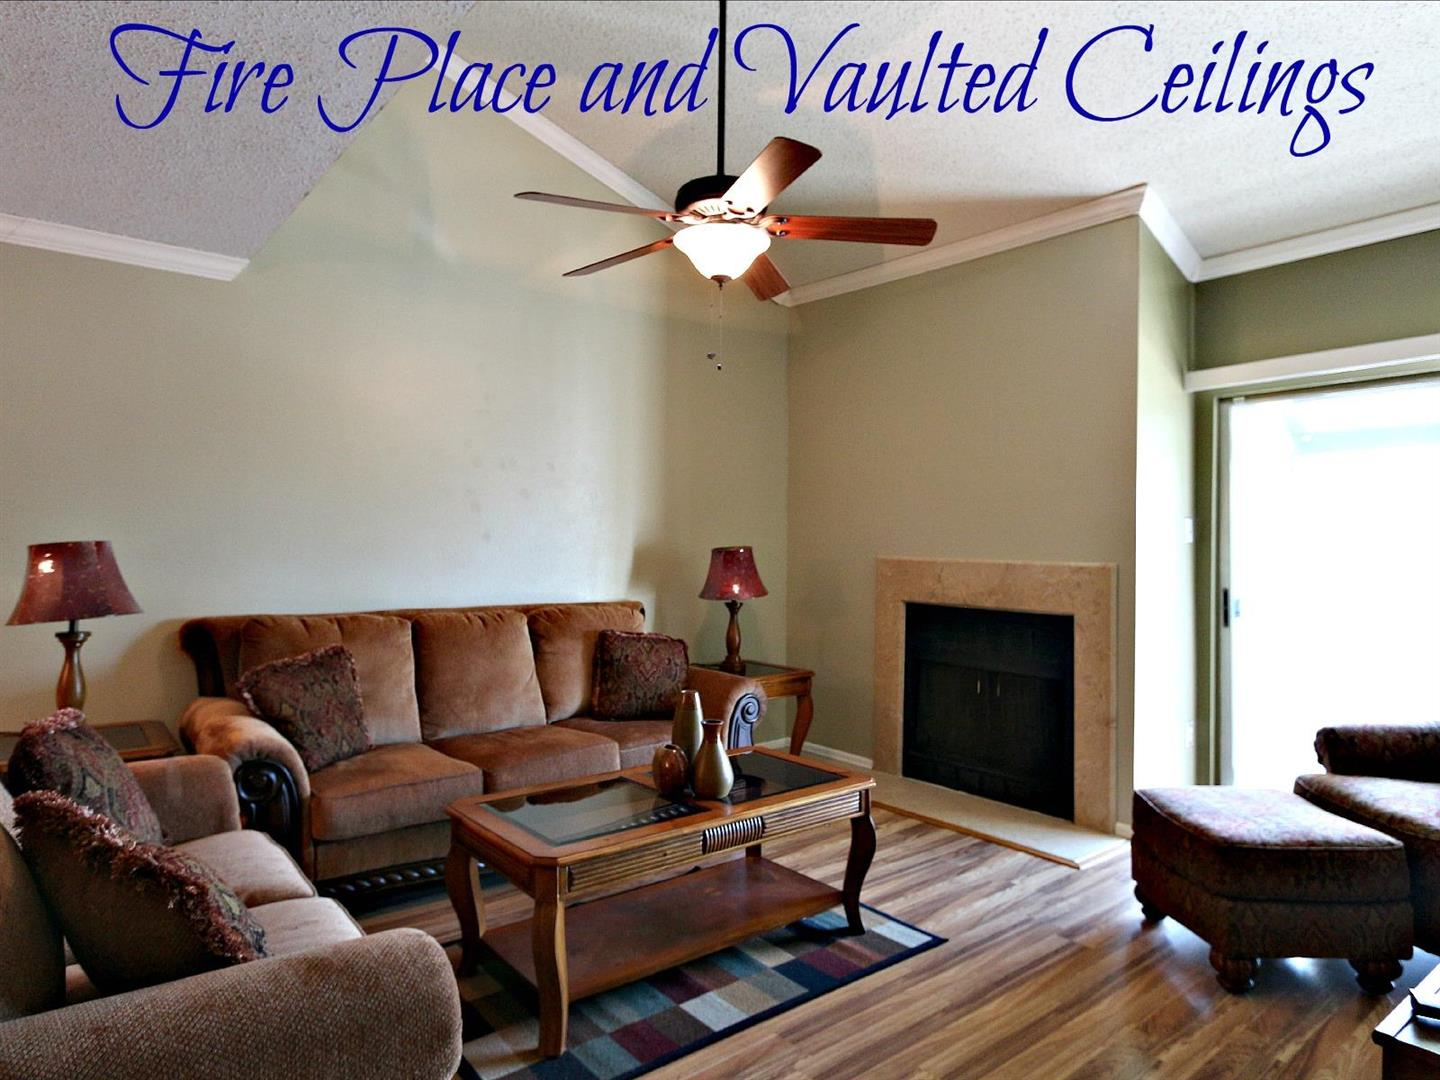 832S.Clearview336,Fireplace.jpg